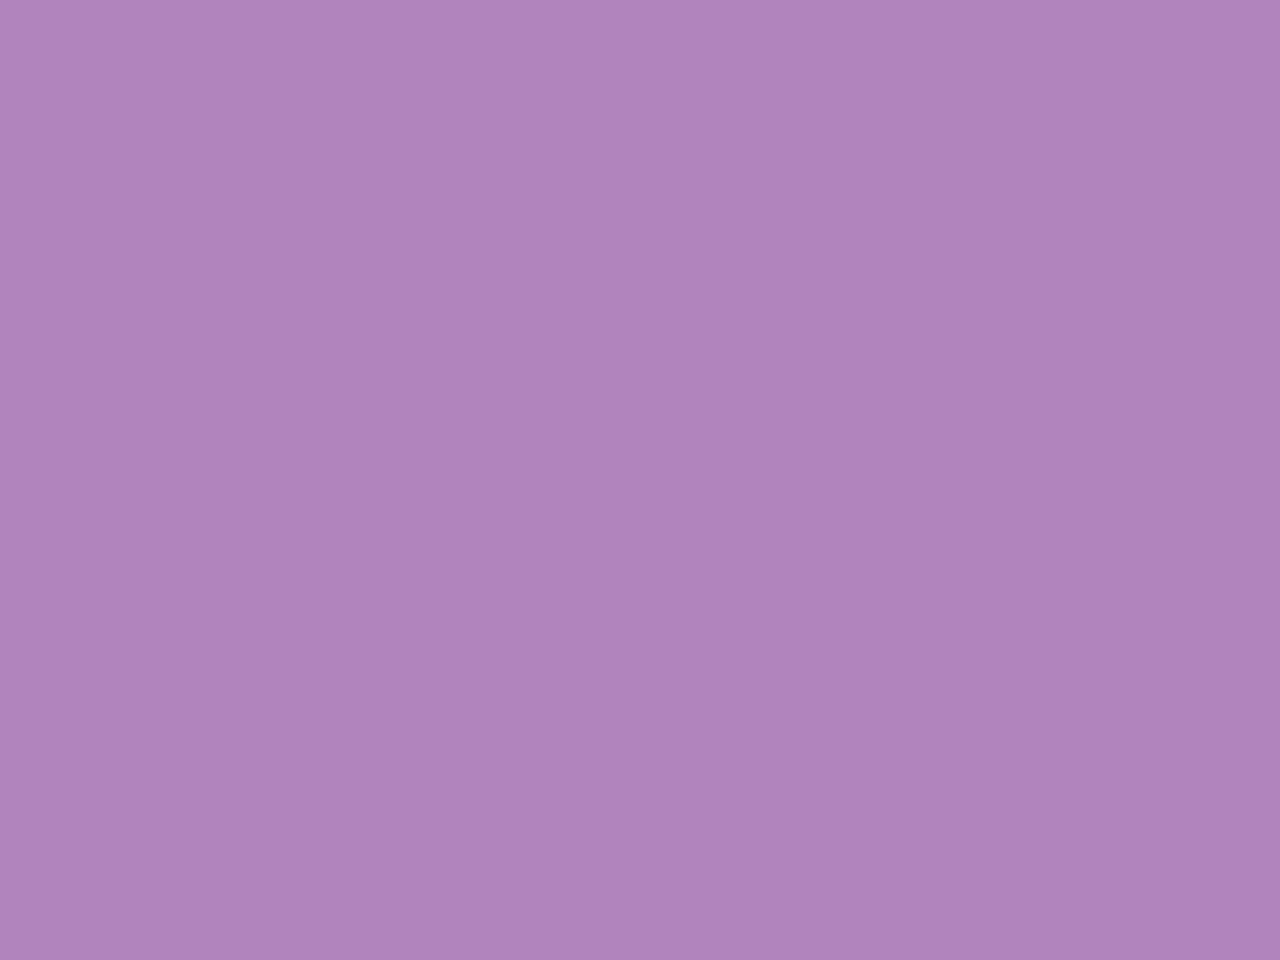 1280x960 African Violet Solid Color Background